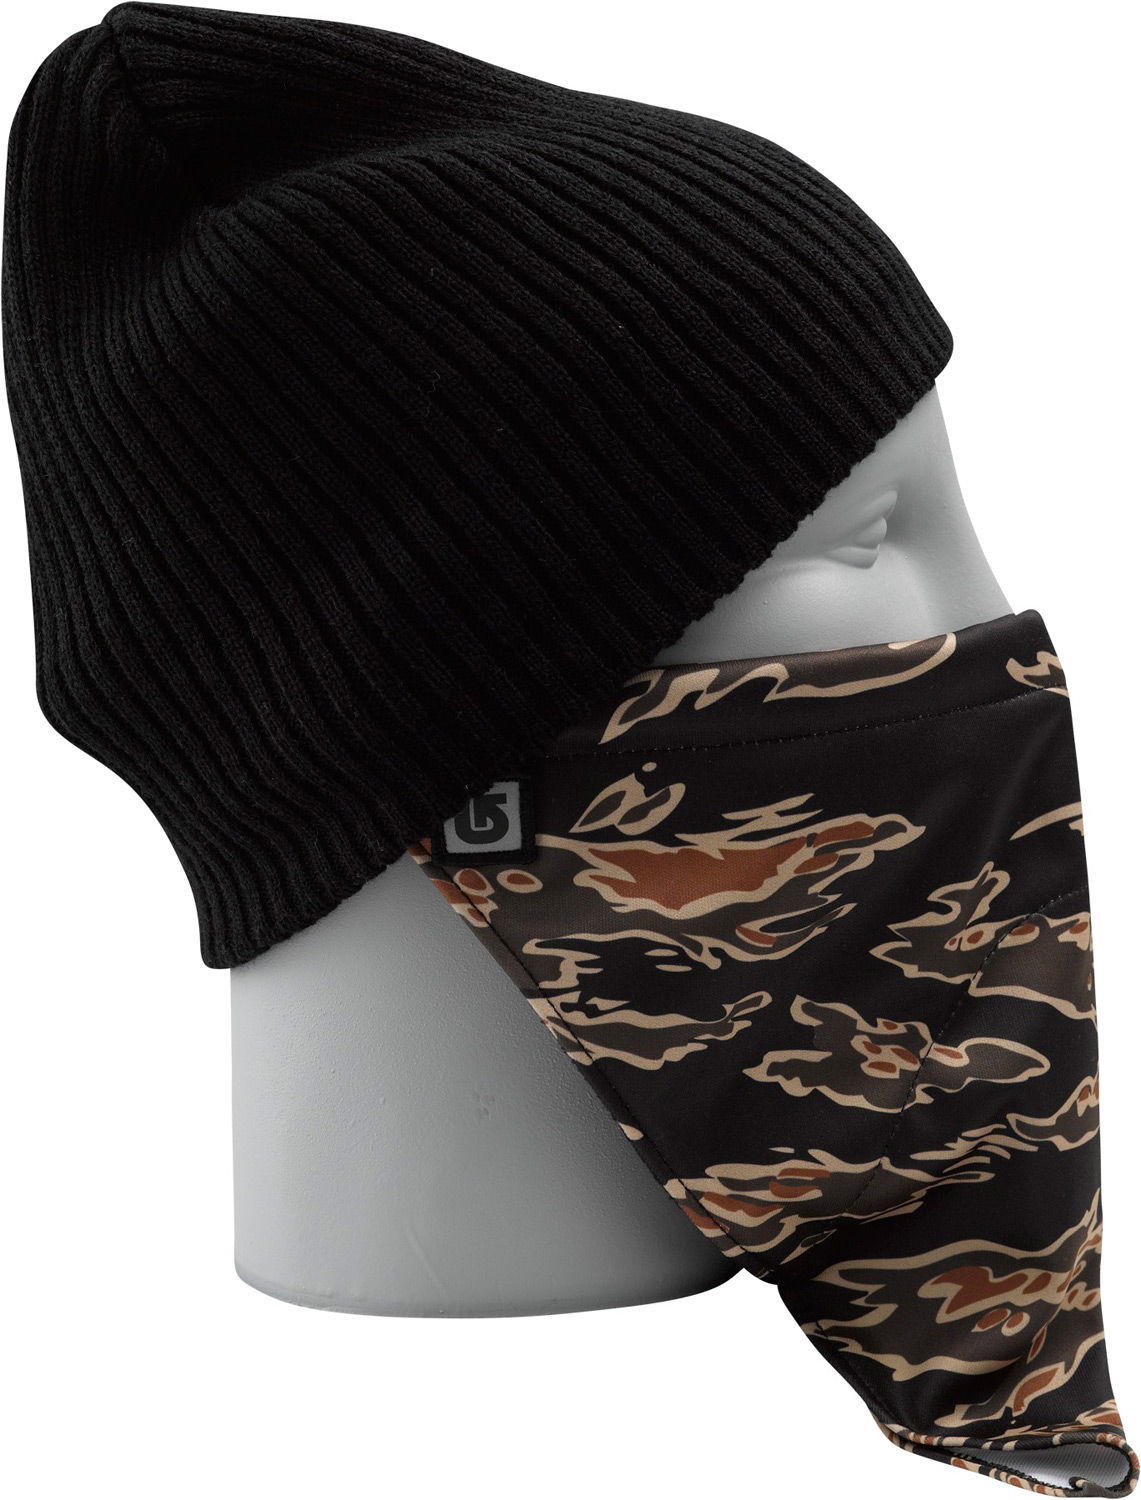 Snowboard Key Features of the Burton Bandito Facemask: 100% Polyester with Fleece Lining Tie-Back Bandana with Toggle Various Burton Screen Prints - $13.95